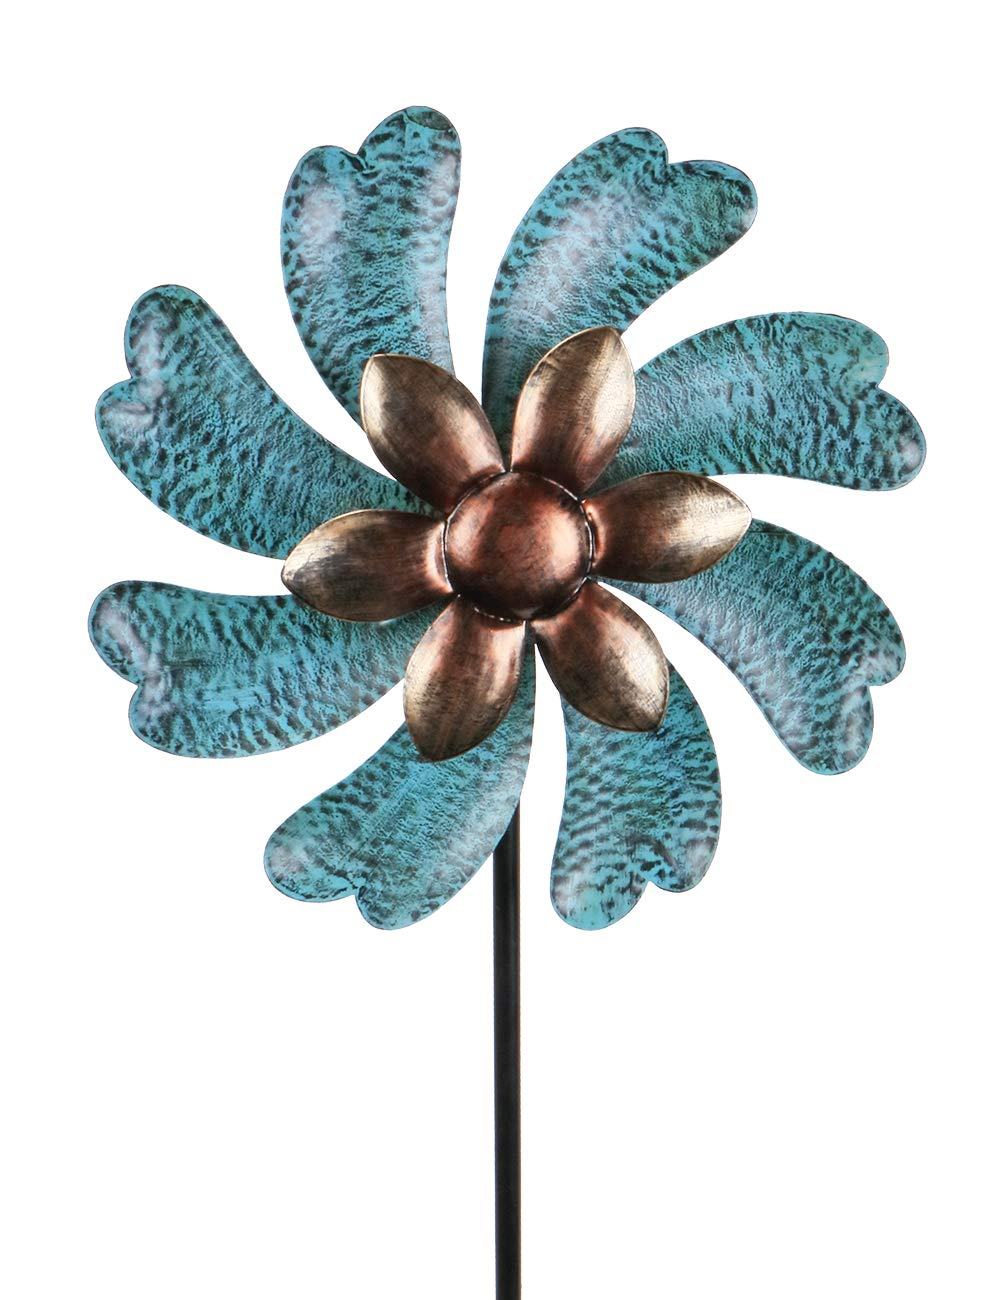 MUMTOP Wind Spinner 45'' Wind Sculptures for Patio Lawn and Garden Let You Feel Different Visual Effects and Relax Your Mood (Cyan) by MUMTOP